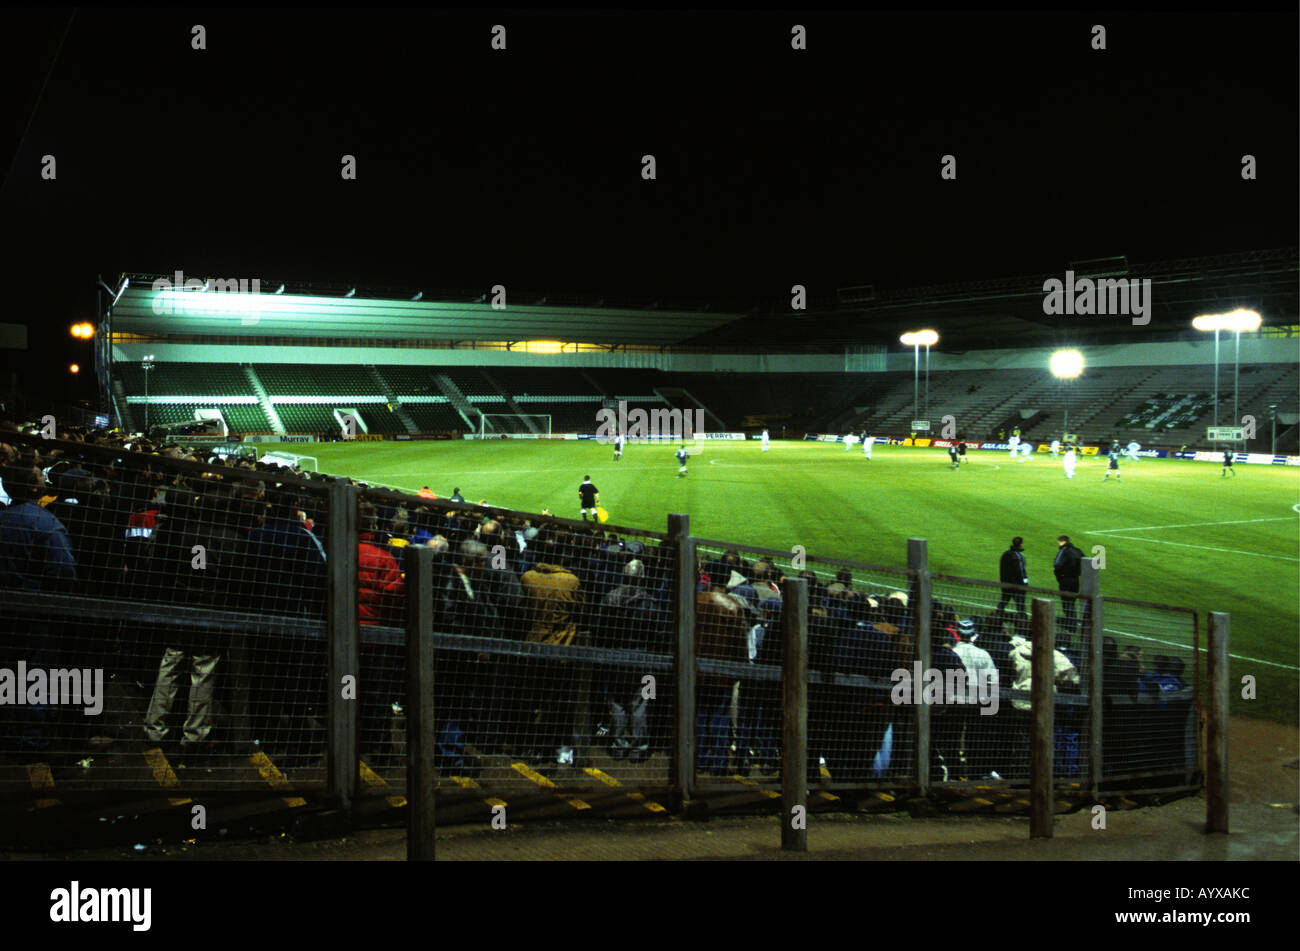 Plymouth Argyle Football Club Playing A League Game At Home Park During Refurbishment Of The Stadium In Devon UK